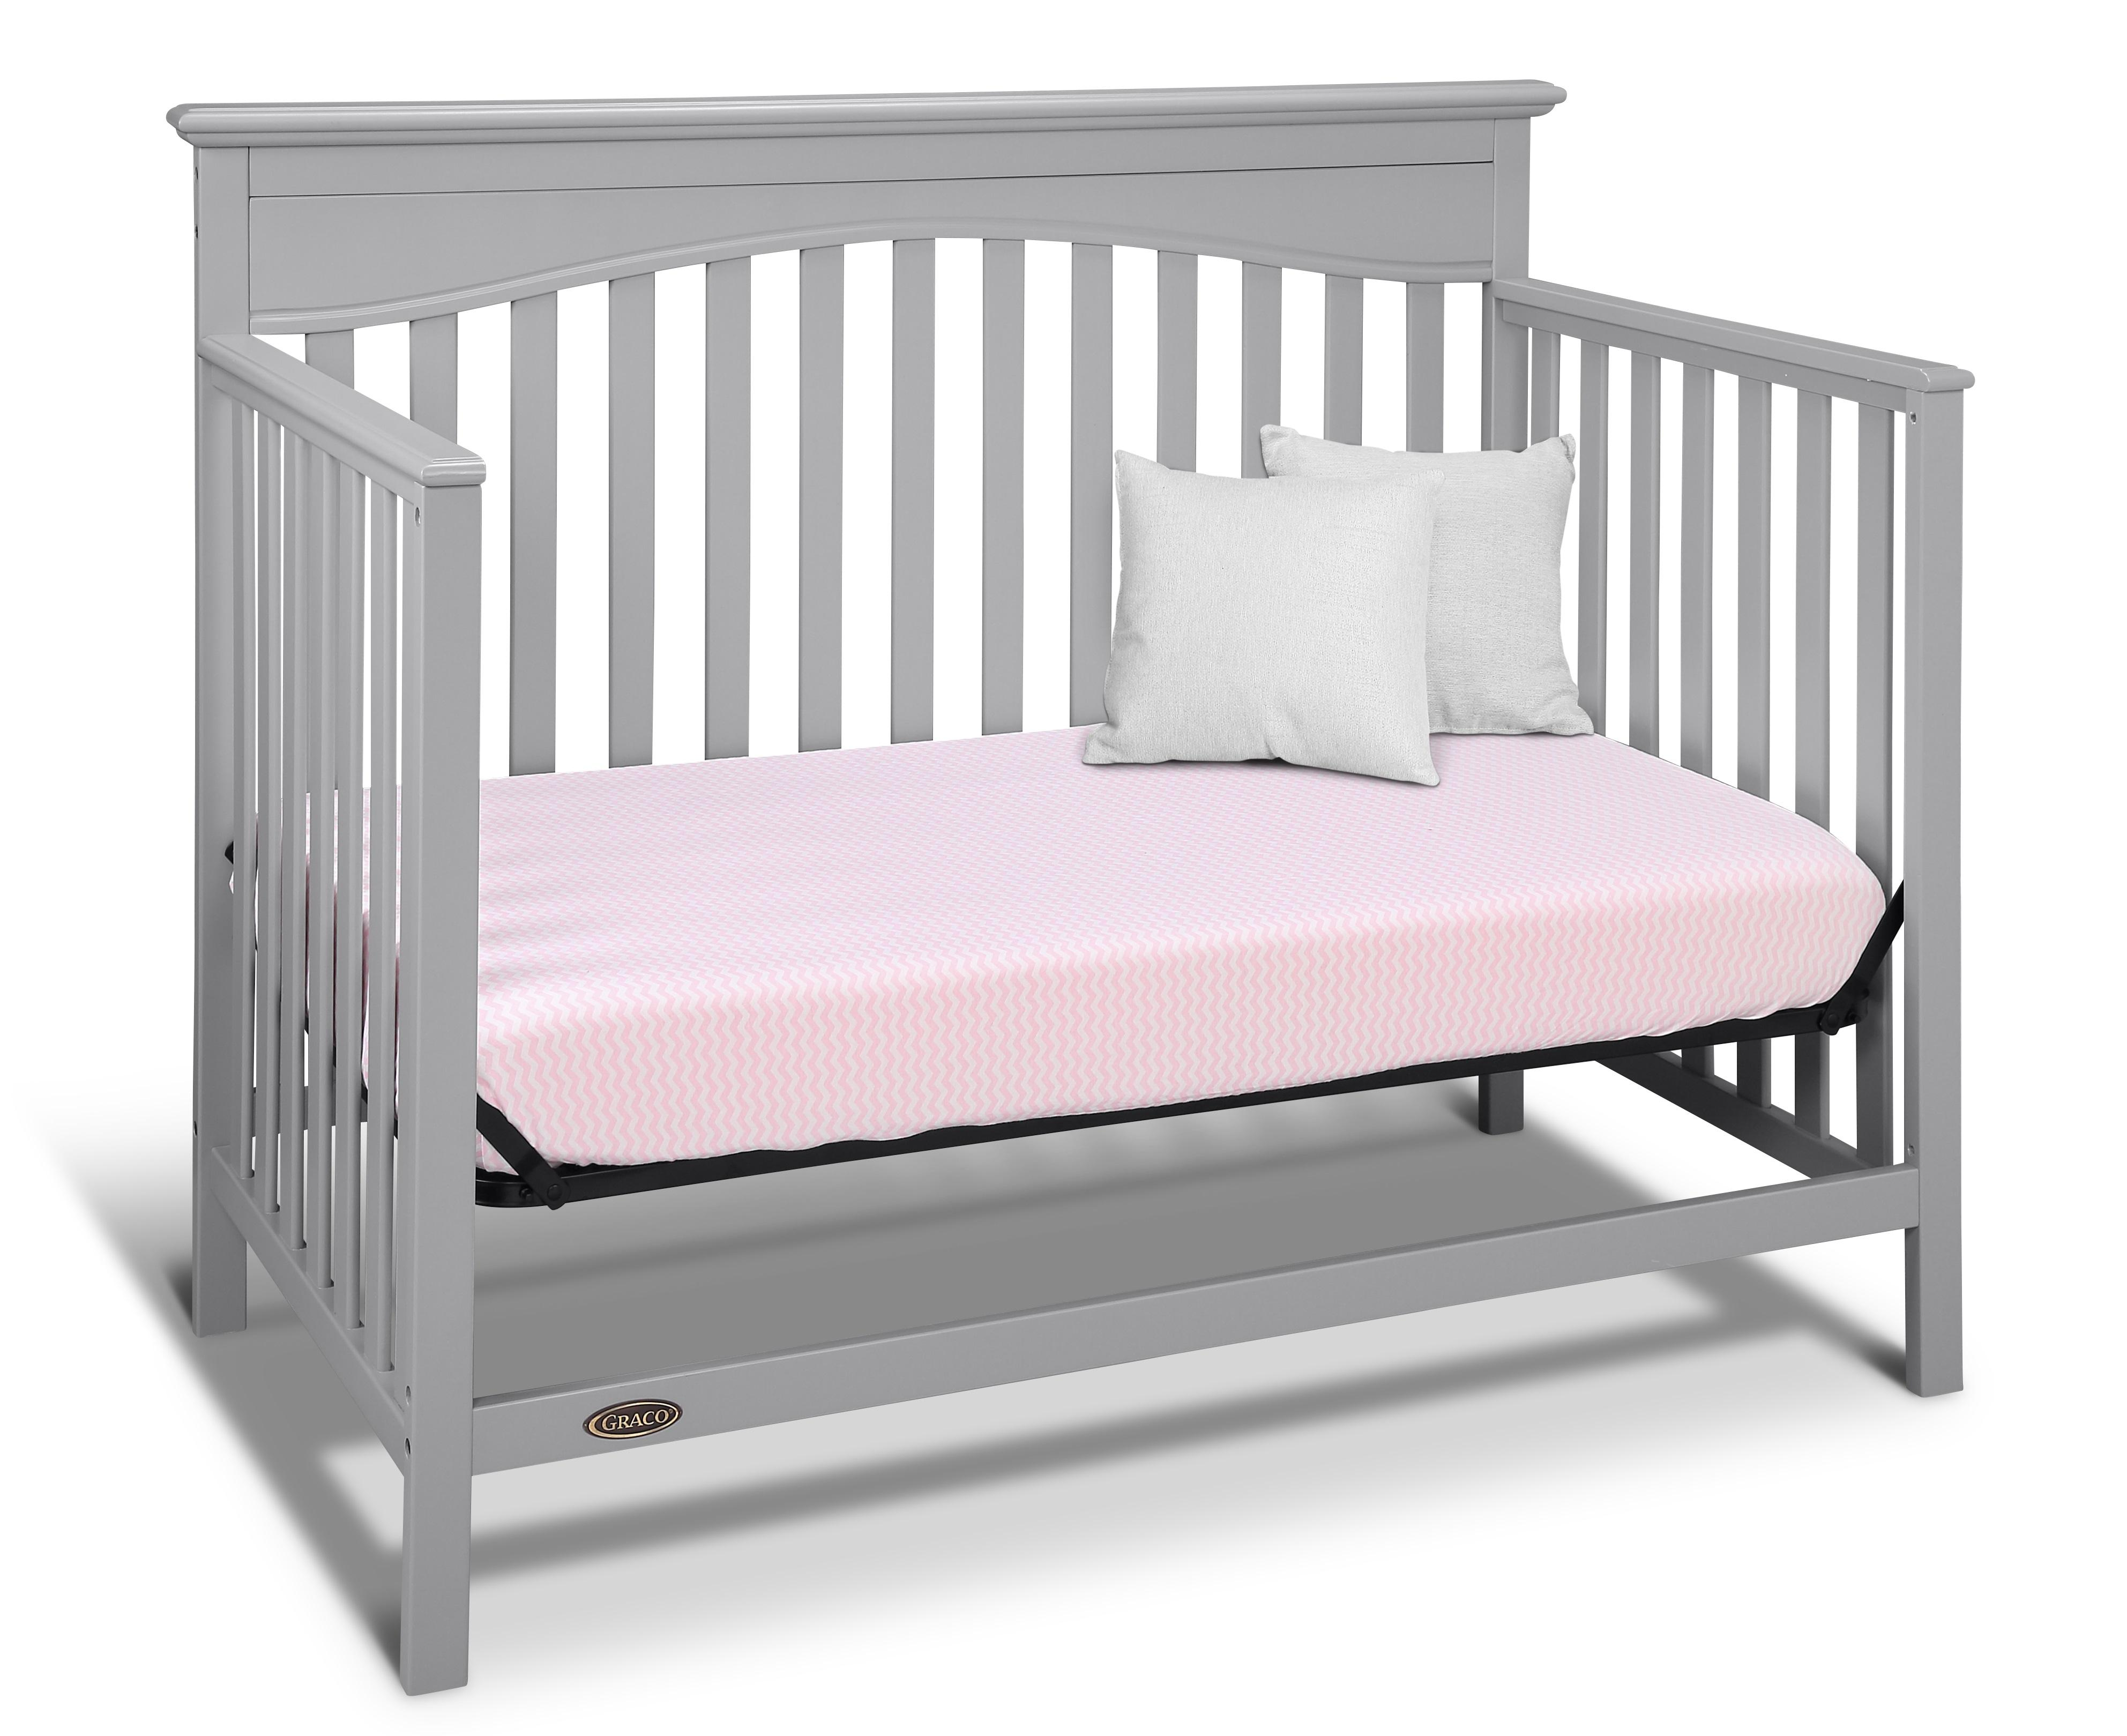 view lauren graco larger com table gray crib cribs changing pebble dp baby signature amazon